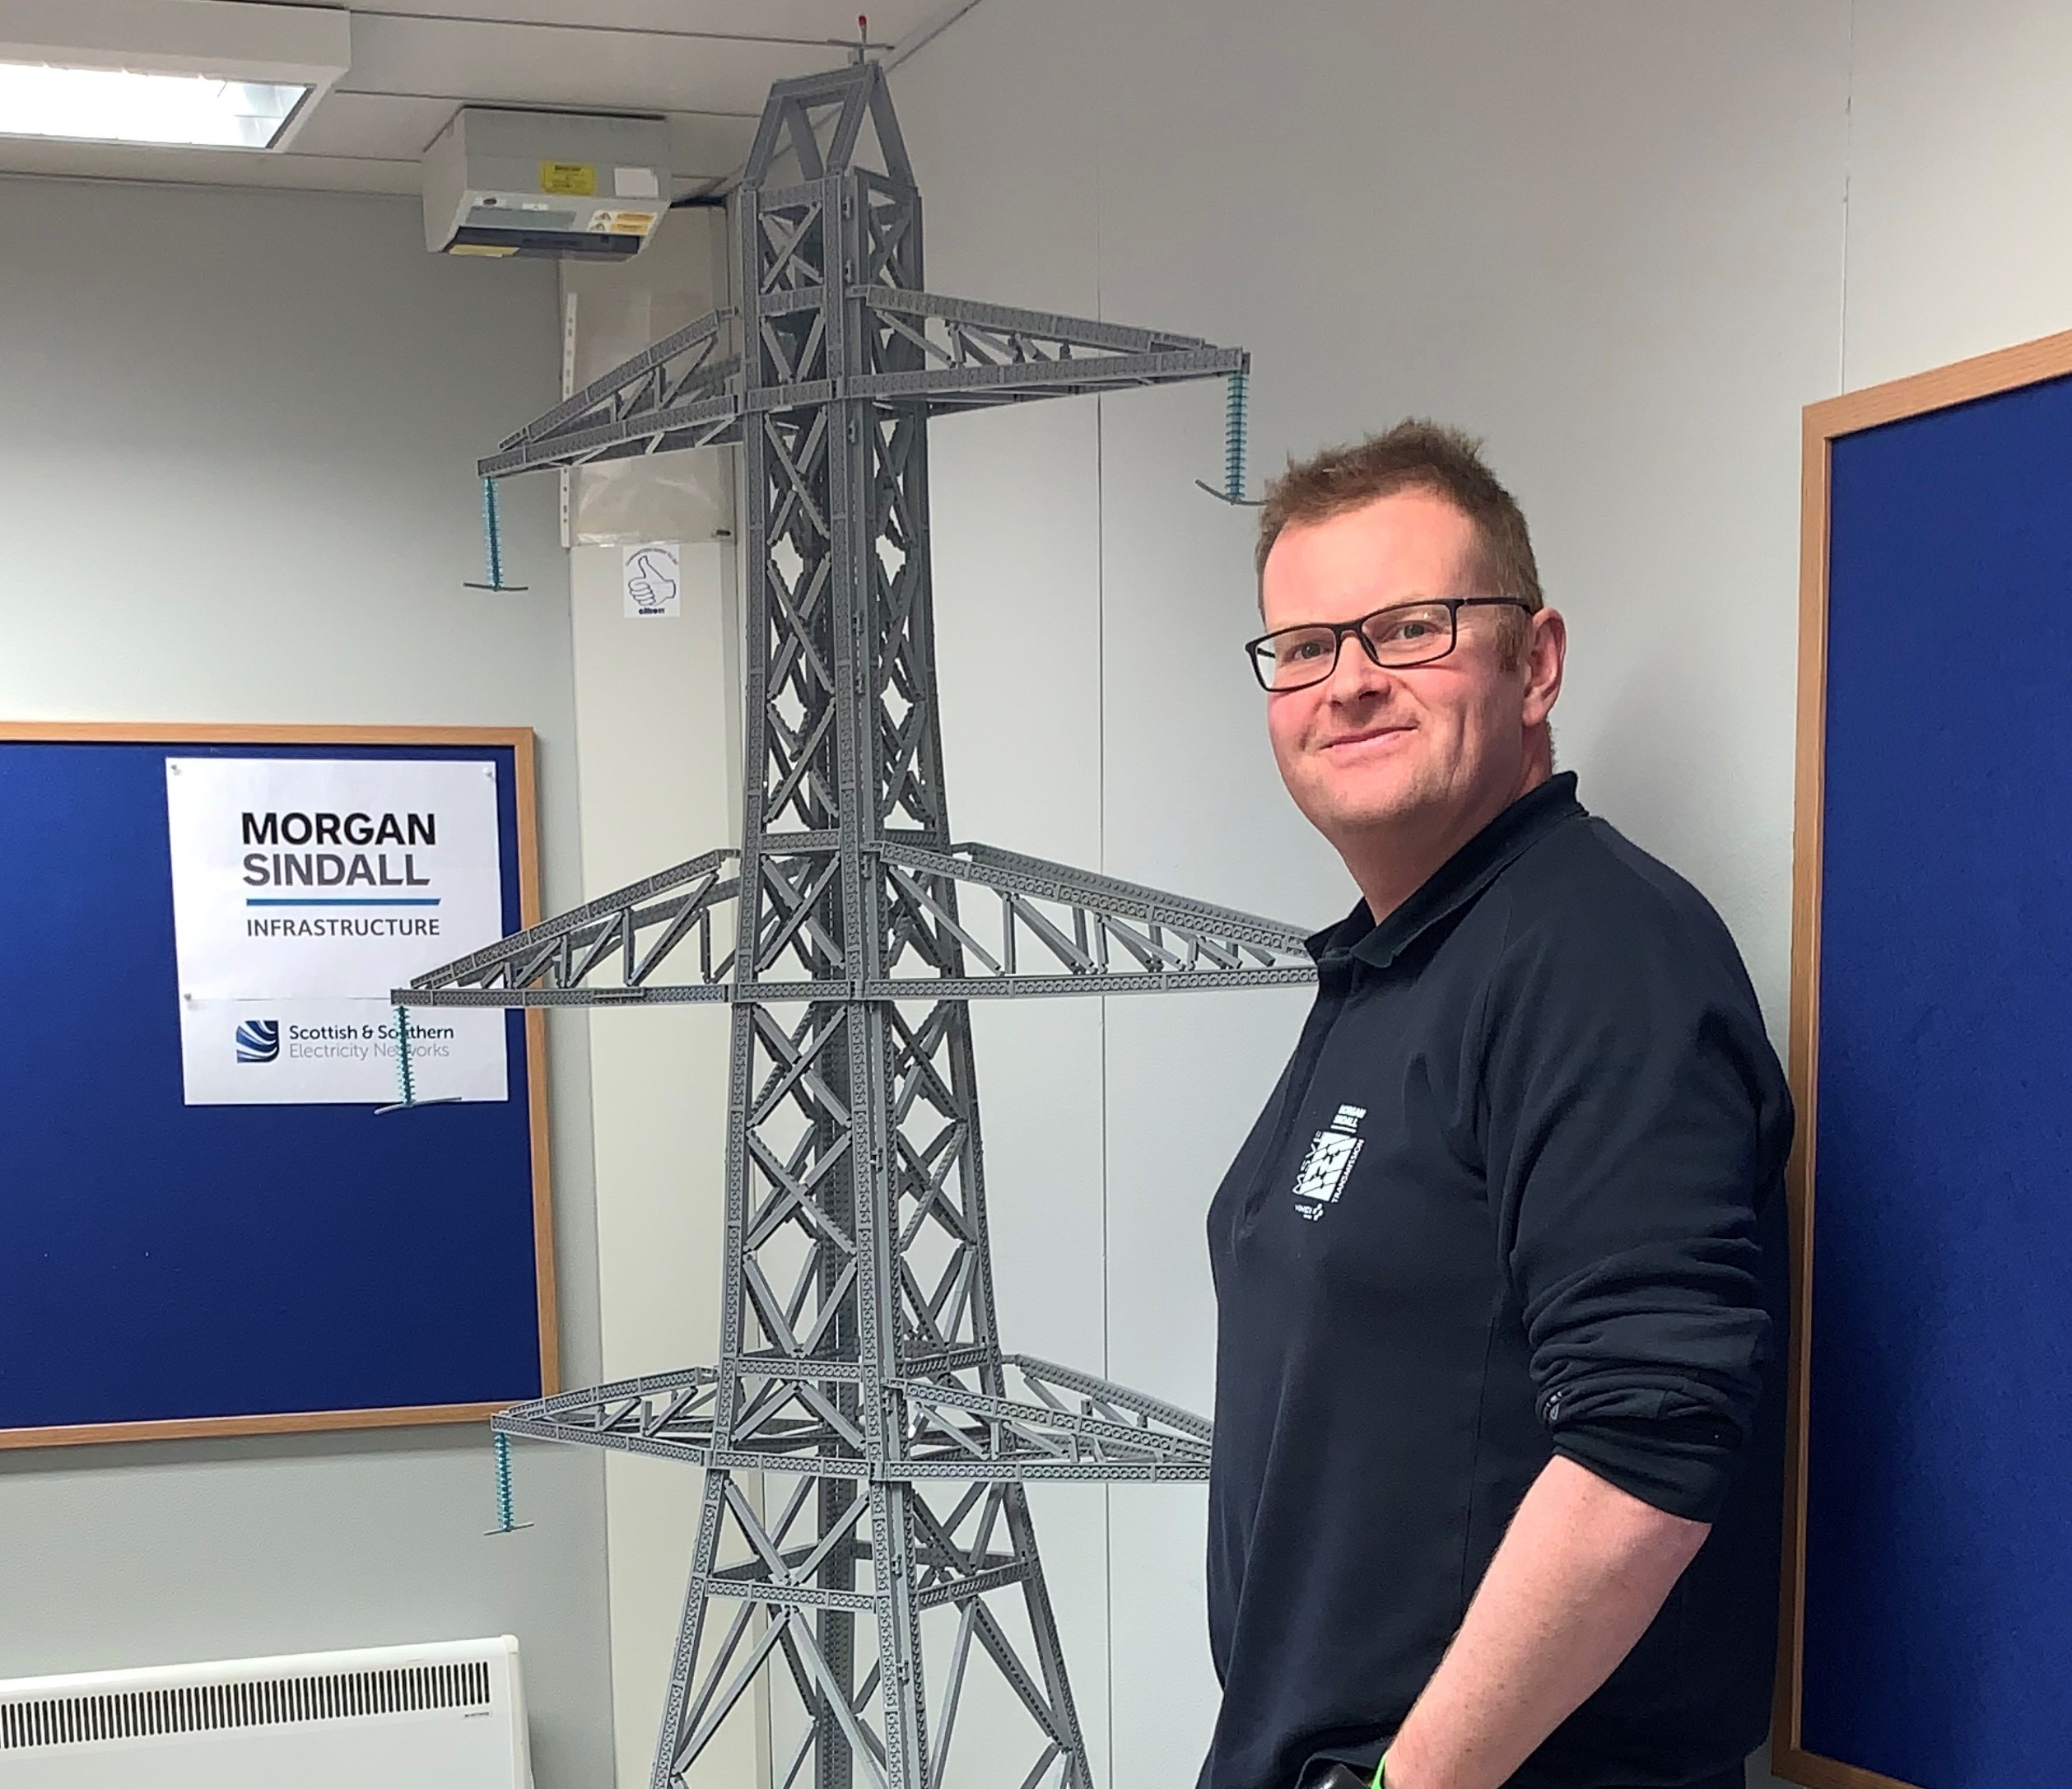 Lego Legend Builds Exact Replica Of Transmission Tower